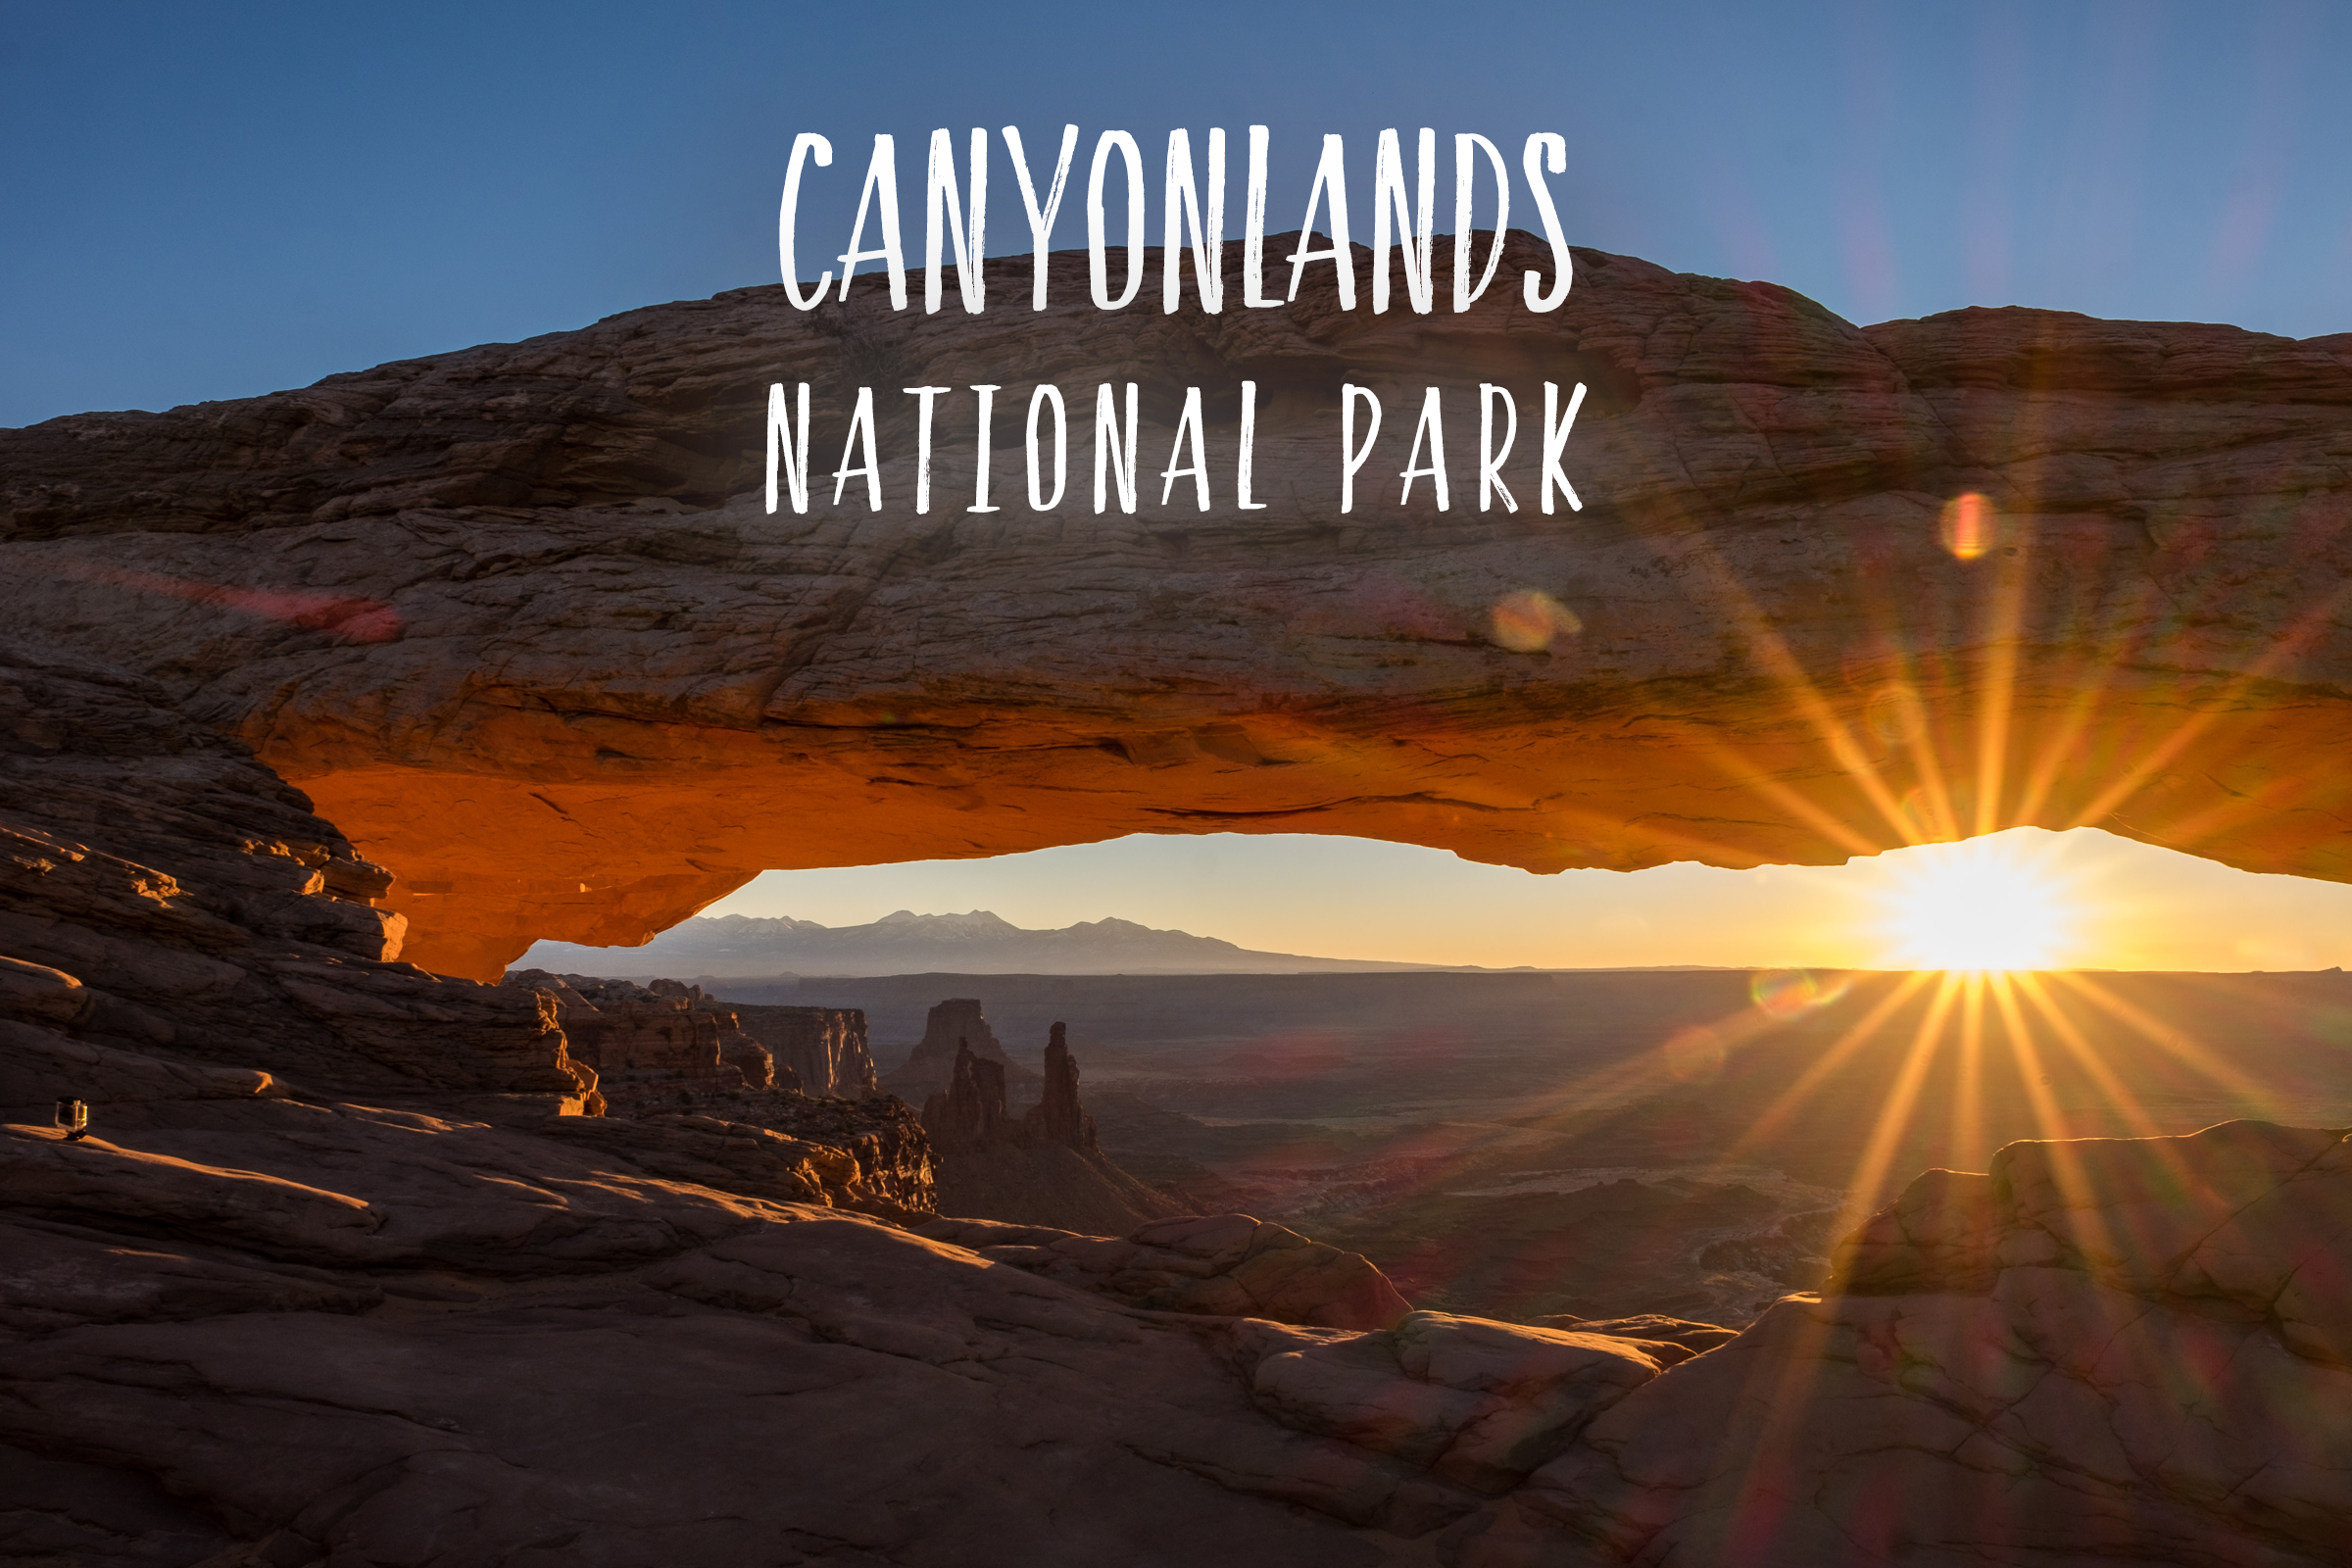 Park 51/59: Canyonlands National Park in Utah